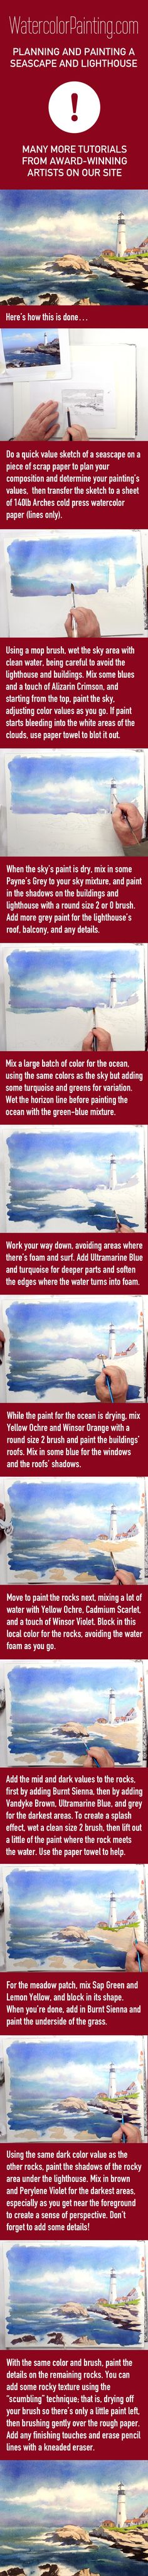 Click here for free full tutorial: http://bit.ly/1lWAE51 Includes video. Learn how to navigate an entire seascape painting from start to finish. Learn about the planning process and finishing process, which is just as important as the painting techniques taught. Various beginner, intermediate & advanced watercolor techniques are taught on this site. #paintingideas